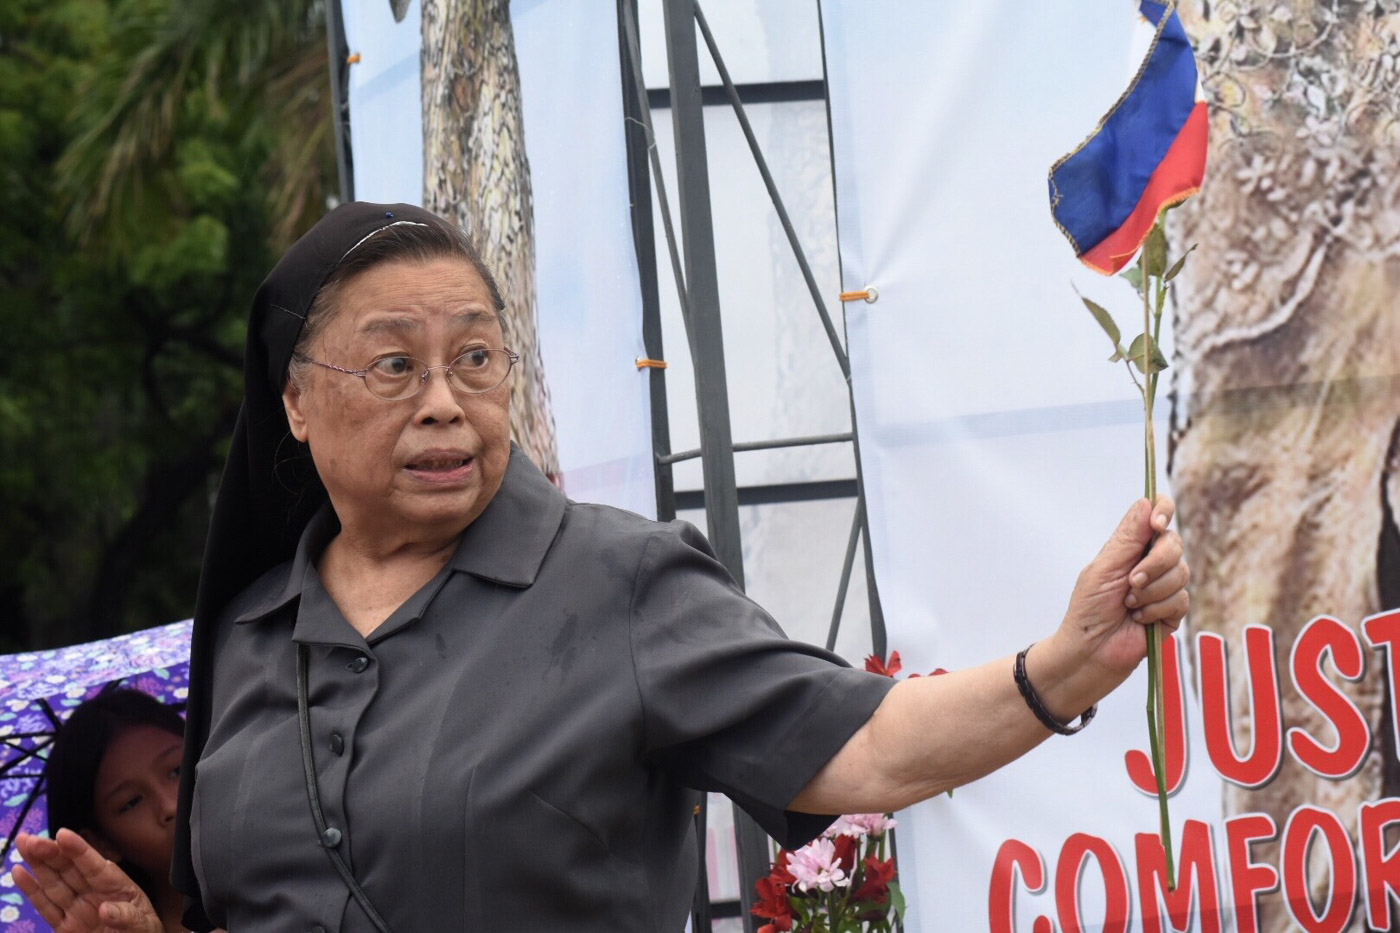 JUSTICE FOR COMFORT WOMEN. Sister Mary John Mananzan addressed the group gathered at Manila Bay on June 12, 2018. Photo by Angie de Silva/Rappler